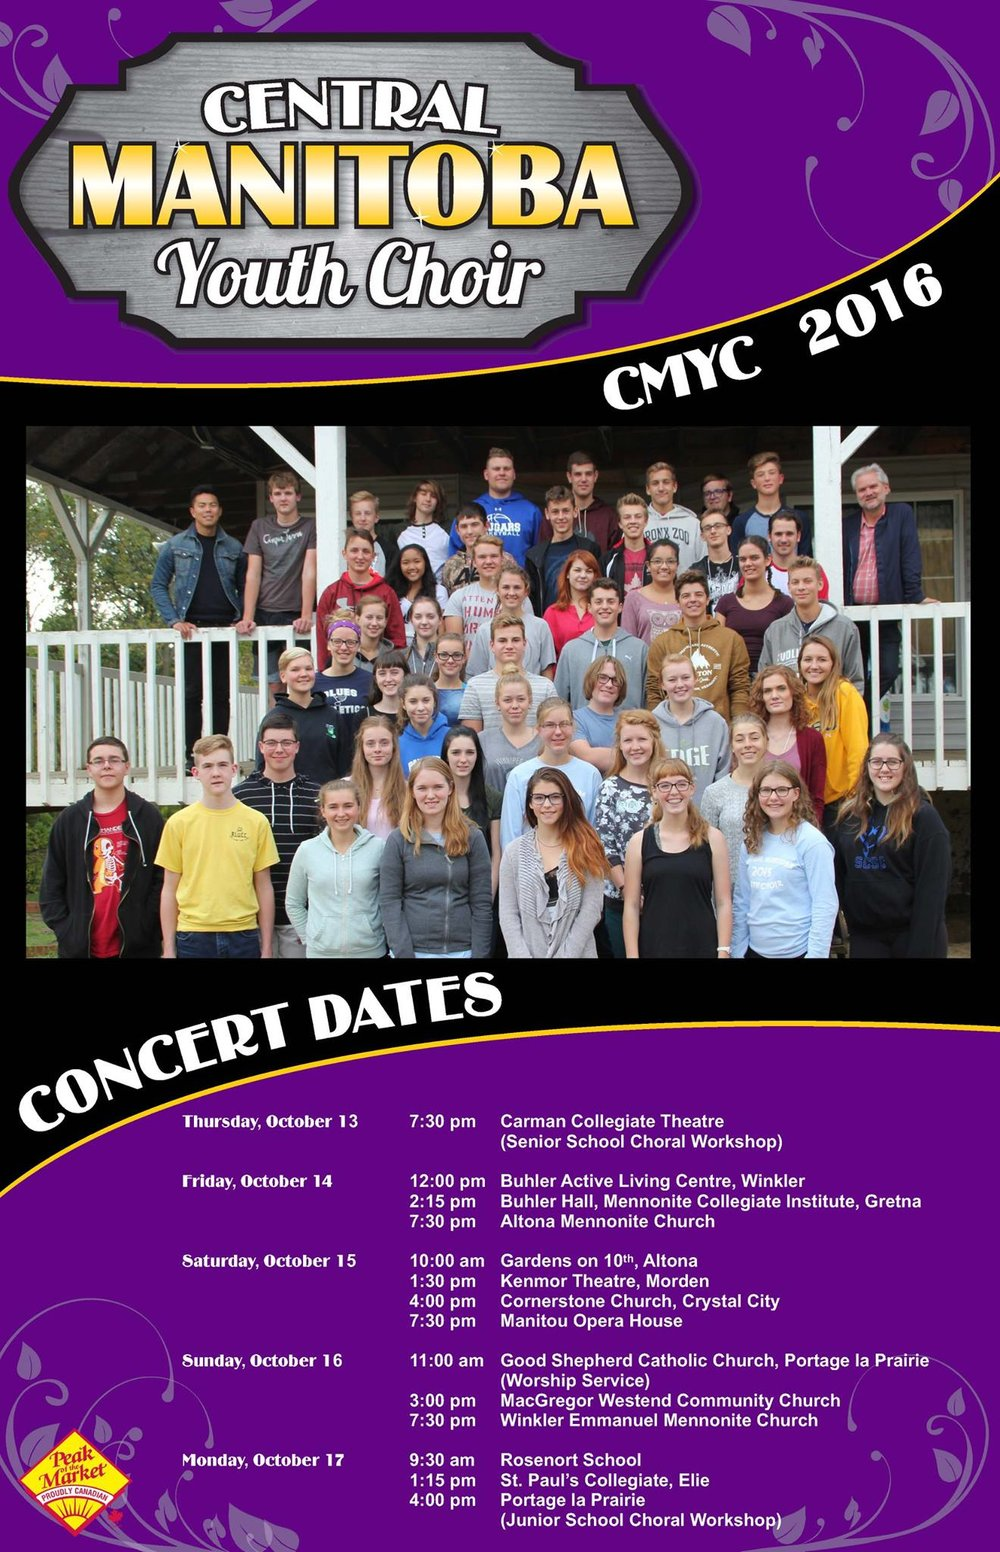 Central Manitoba Youth Choir (CMYC) 2016 Concert Dates